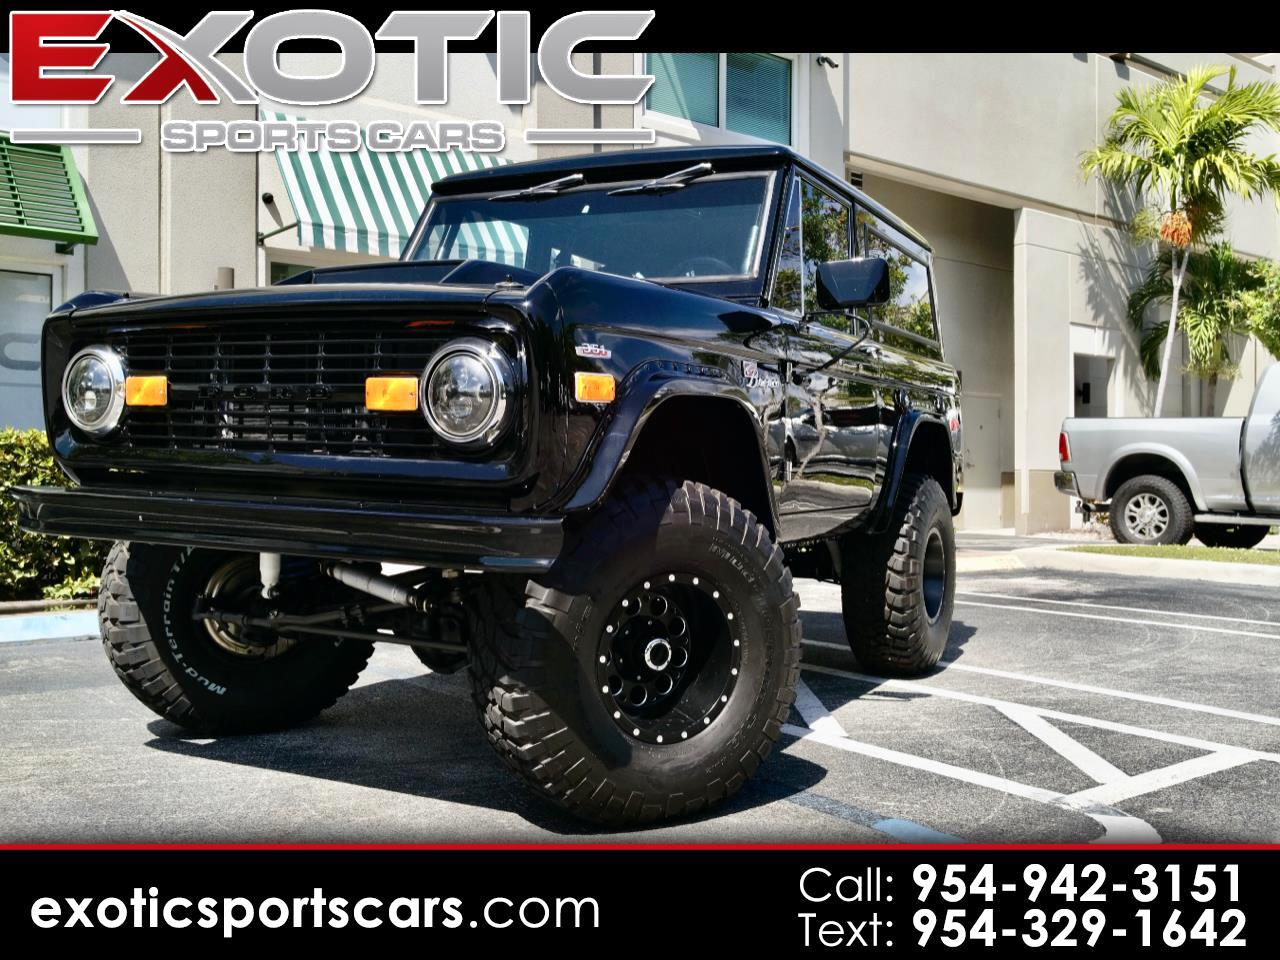 Ford Bronco 2dr Wagon 1971